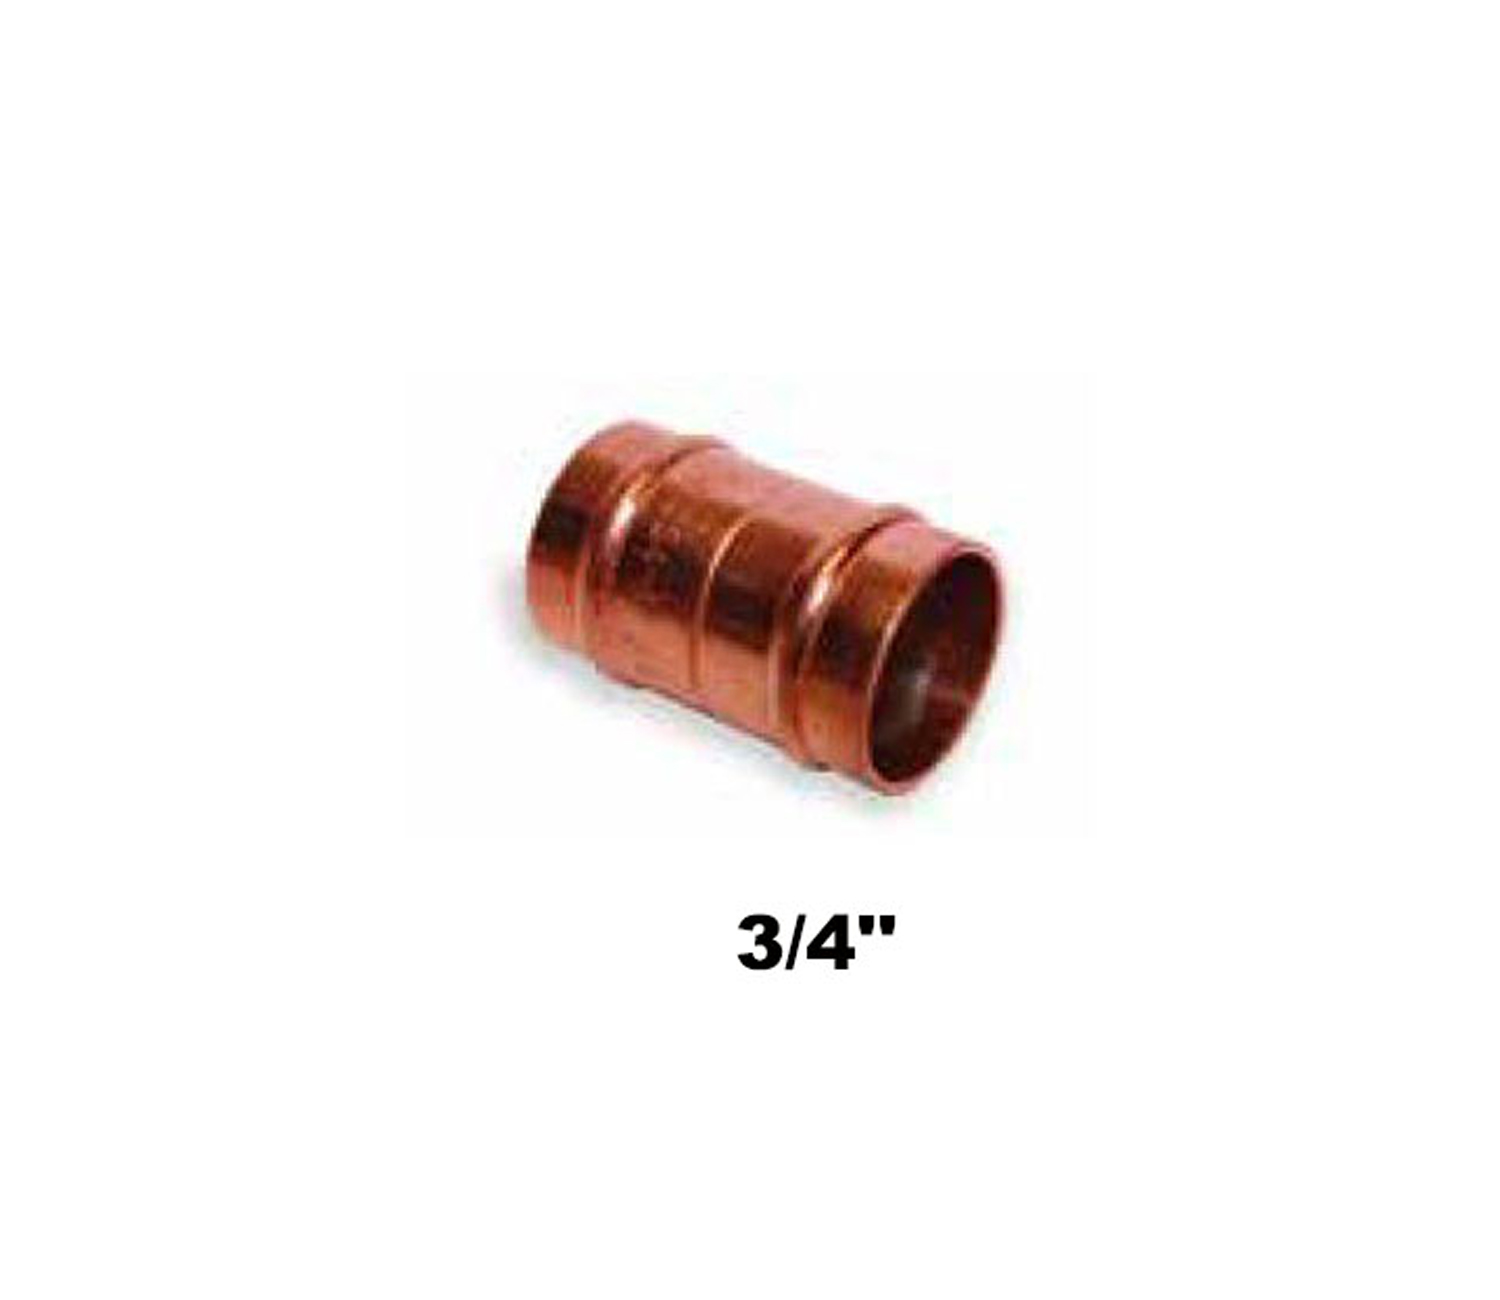 "Straight Compression Coupler C×C 3/4"" (10002)"